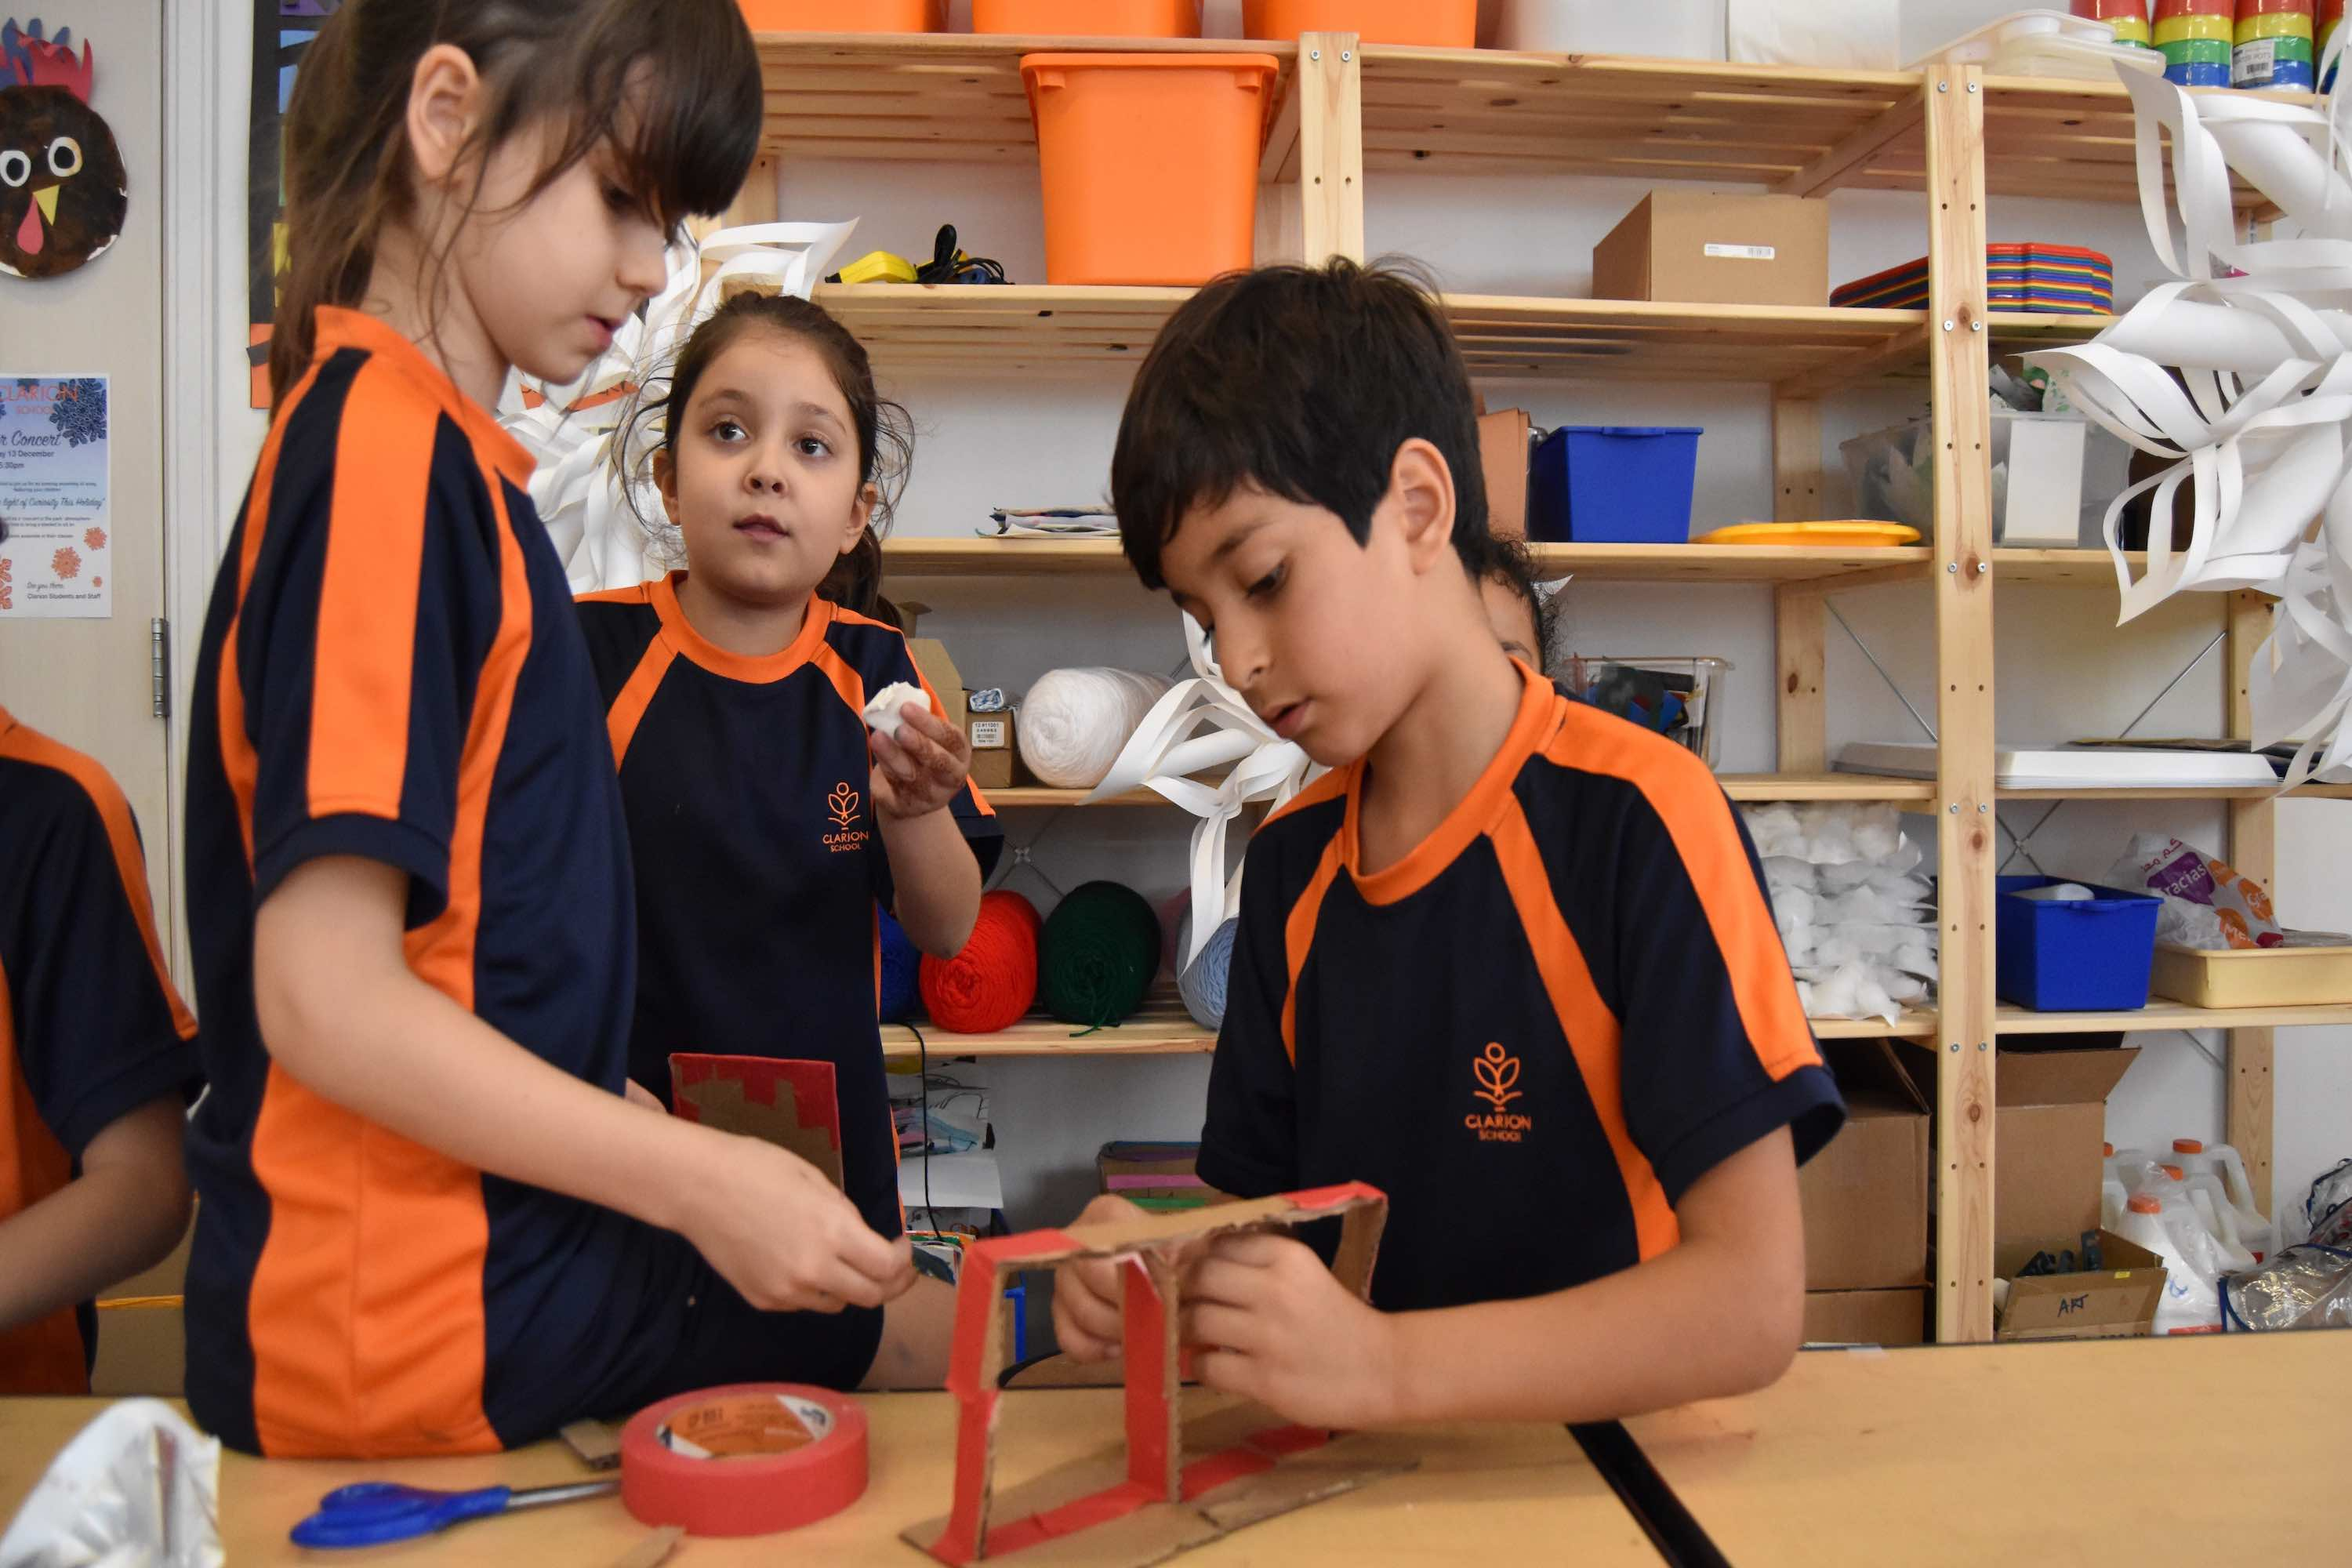 Collaboration in Classroom Leads to Future Success at Workplaces